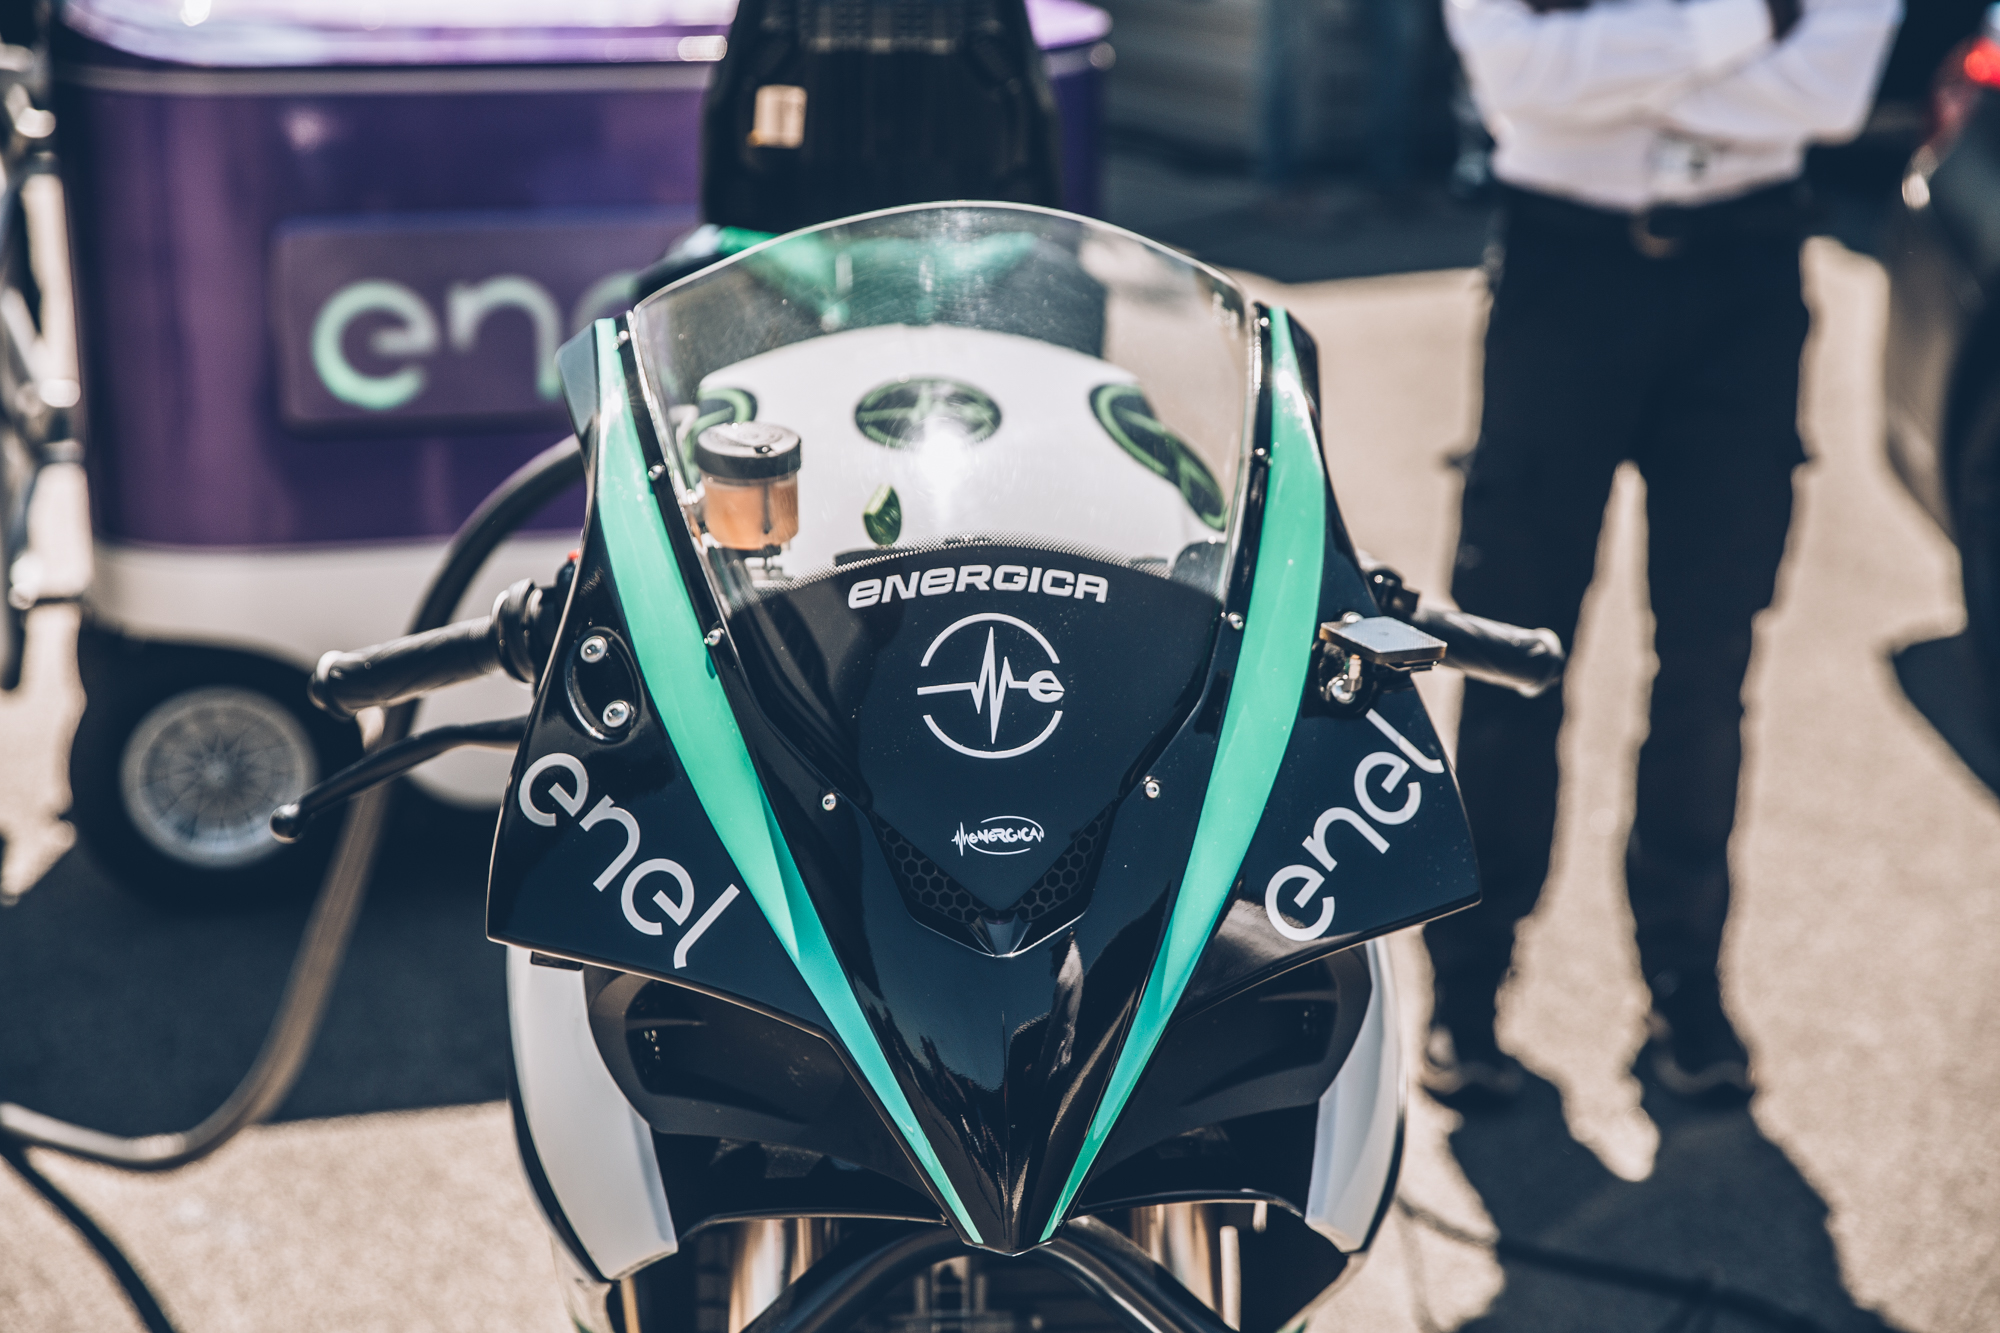 MOTO E NICOLAS GOUBERT: WE ARE AT THE START OF A GREAT STORY